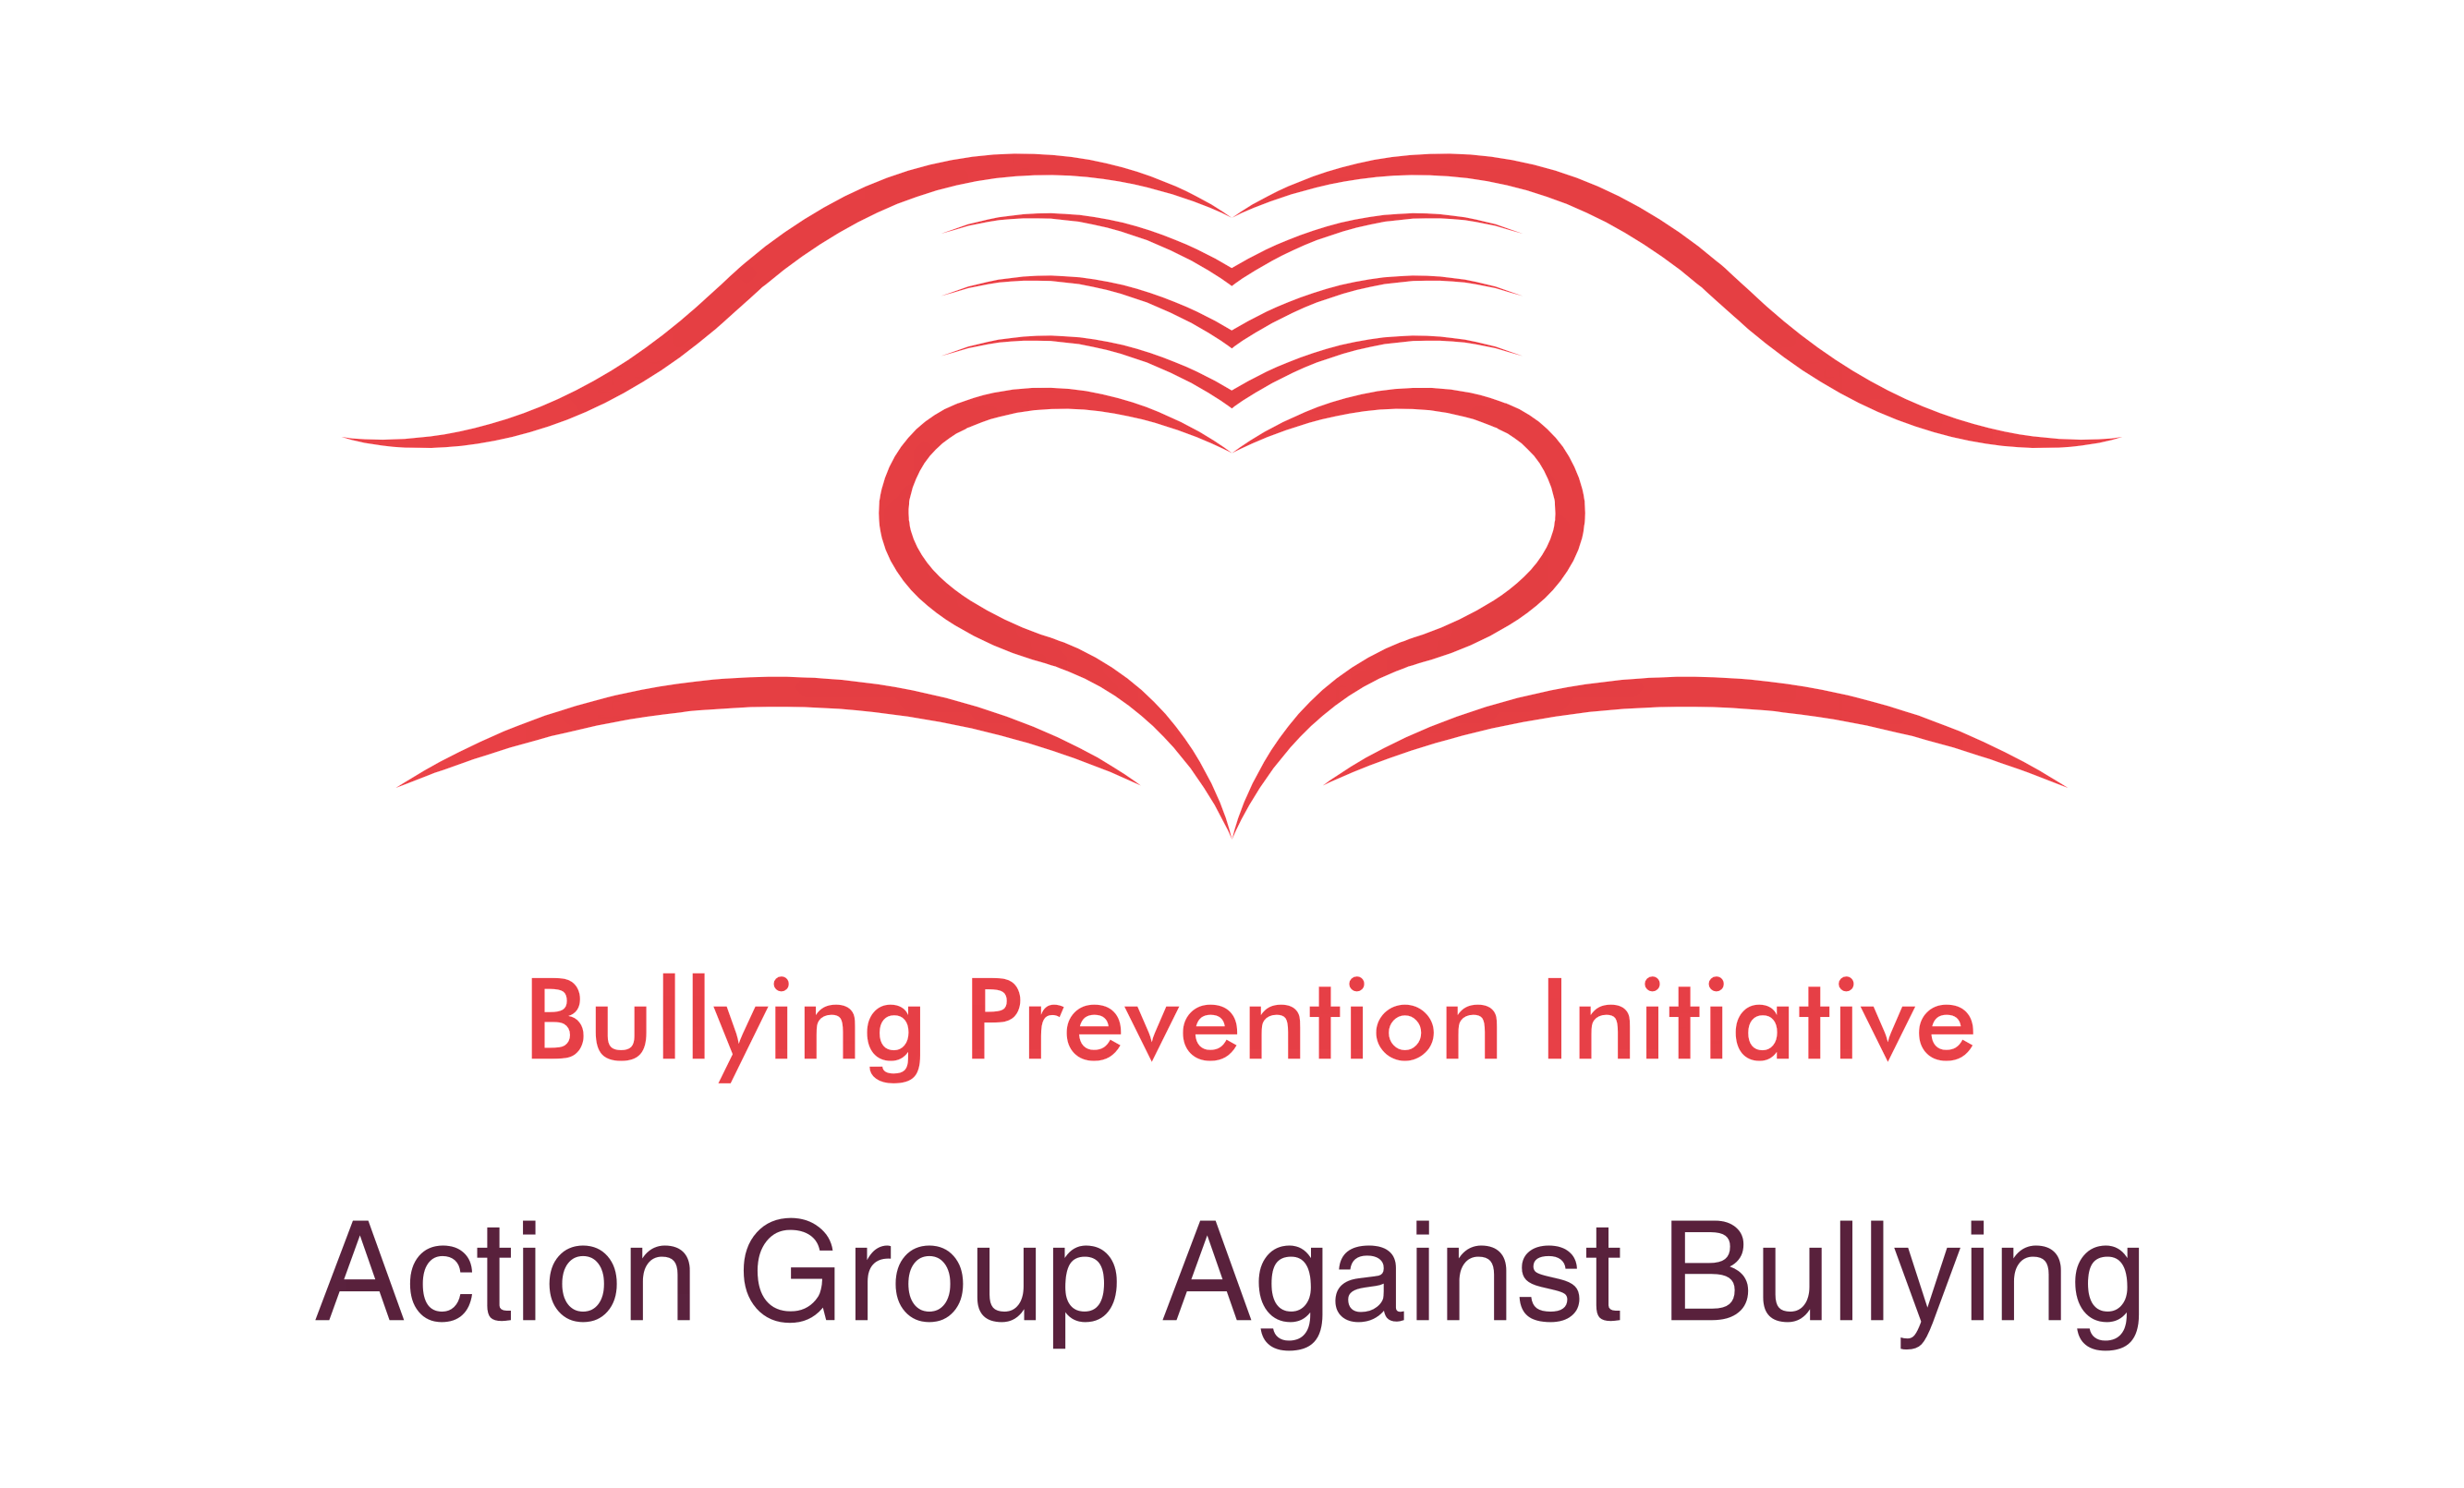 Action Group Against Bullying (AGAB)